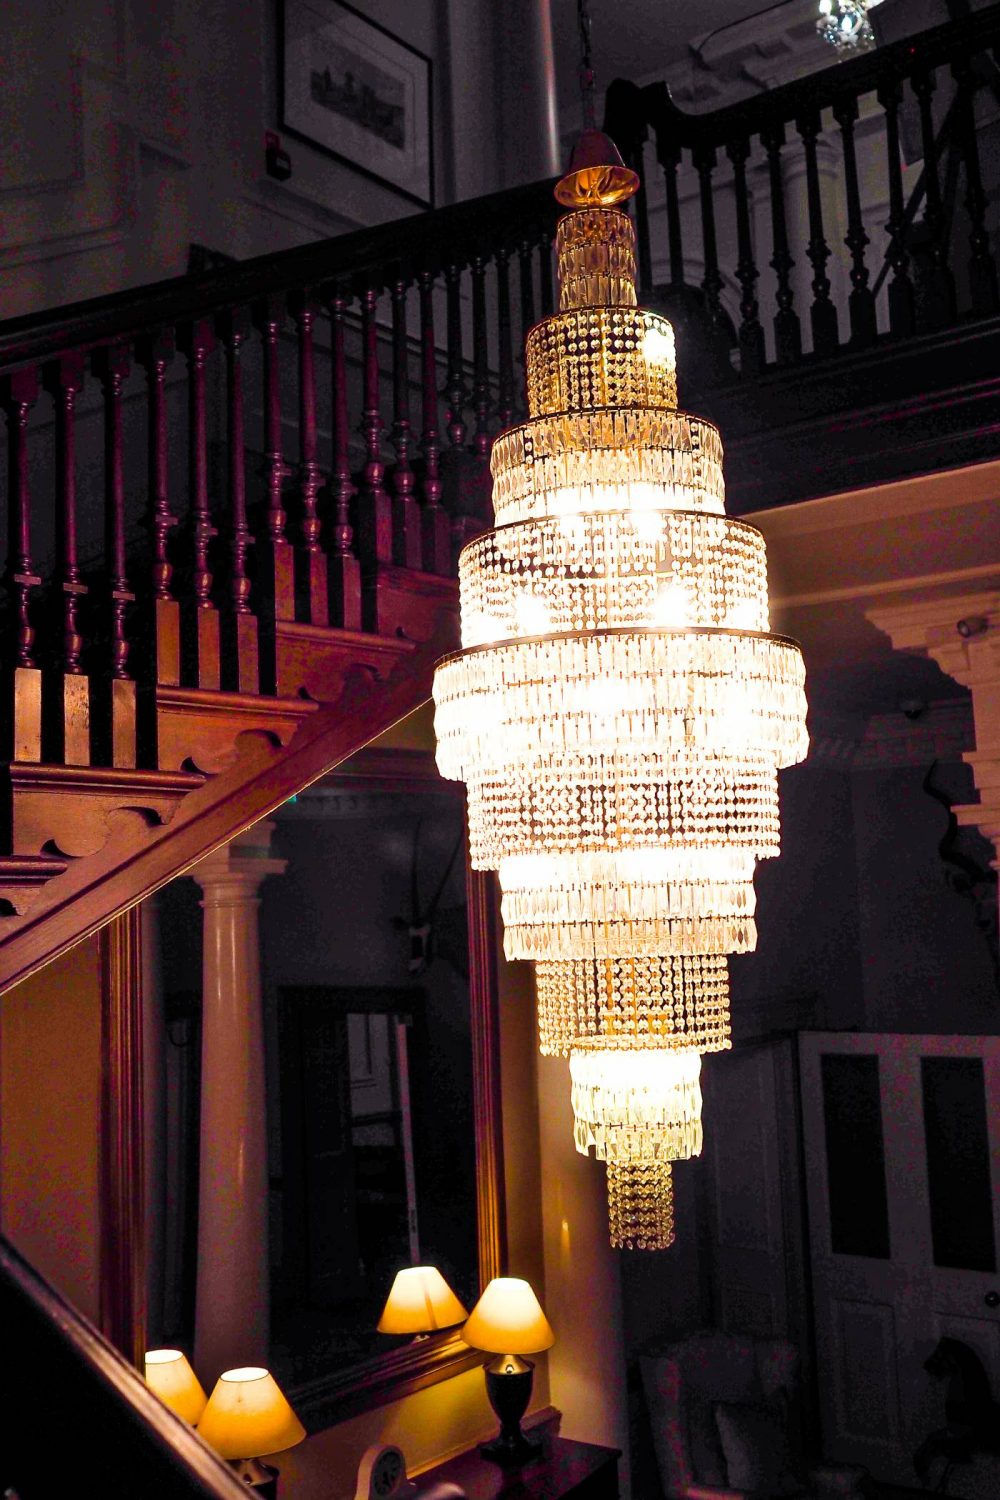 The Chandelier in the entrance hall at Nanteos Mansion